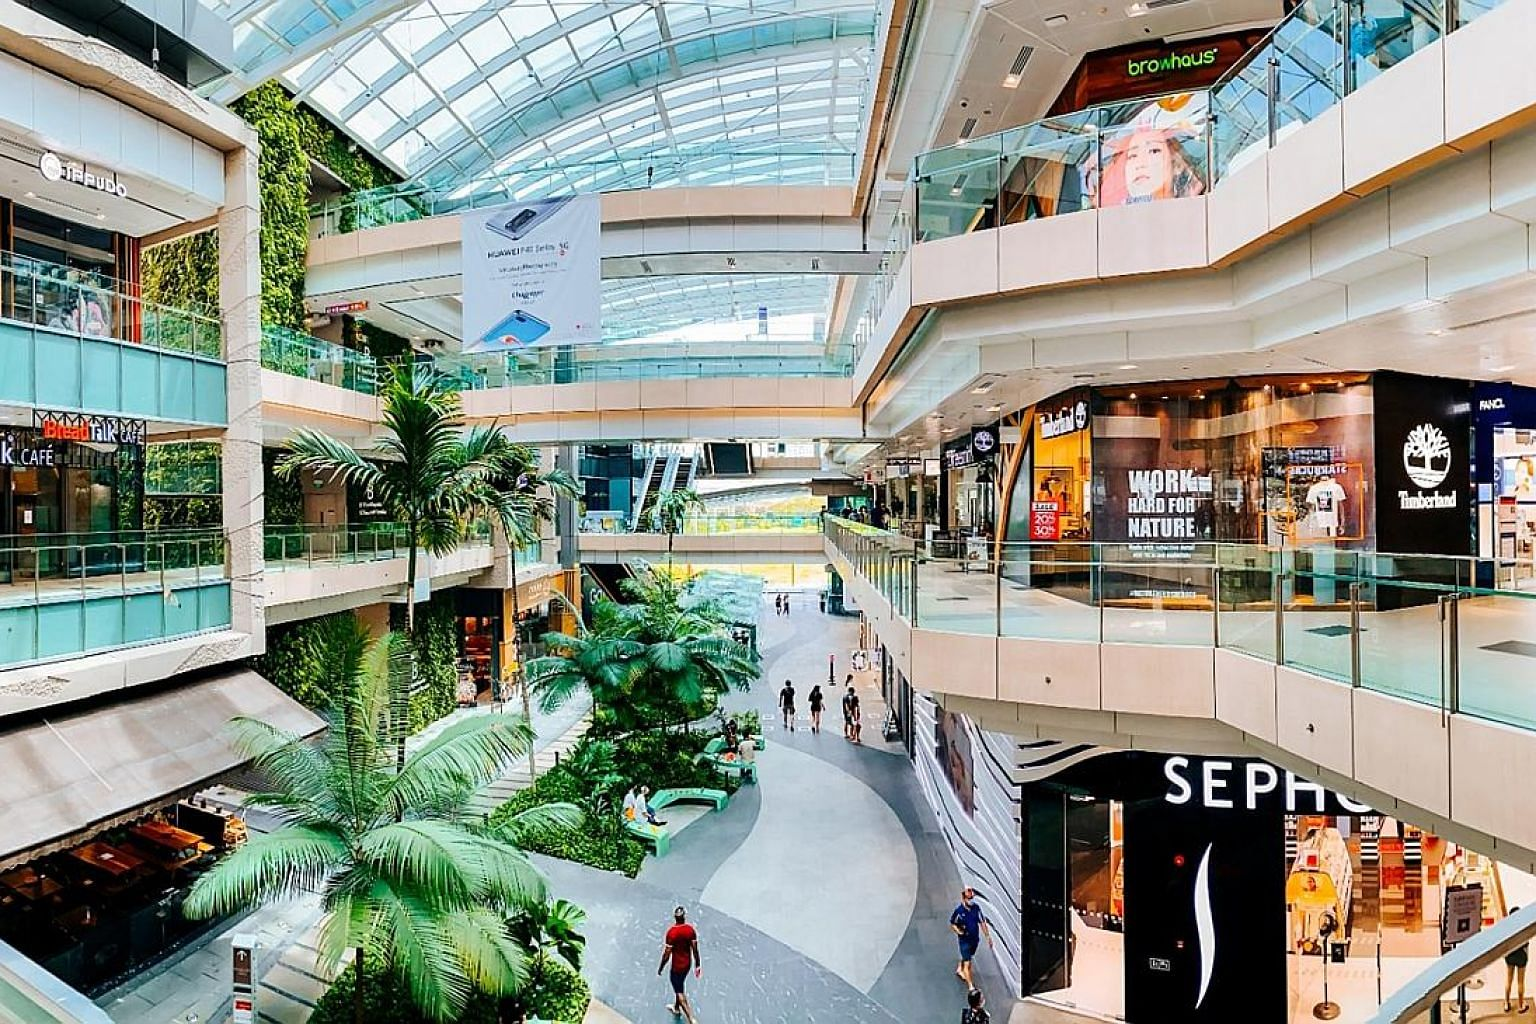 The index ranked 577 Singapore-listed firms in the general category and 45 trusts in the real estate investment trust and business trust section. CapitaLand subsidiaries - CapitaLand Commercial Trust, CapitaLand Mall Trust, which owns Westgate mall (